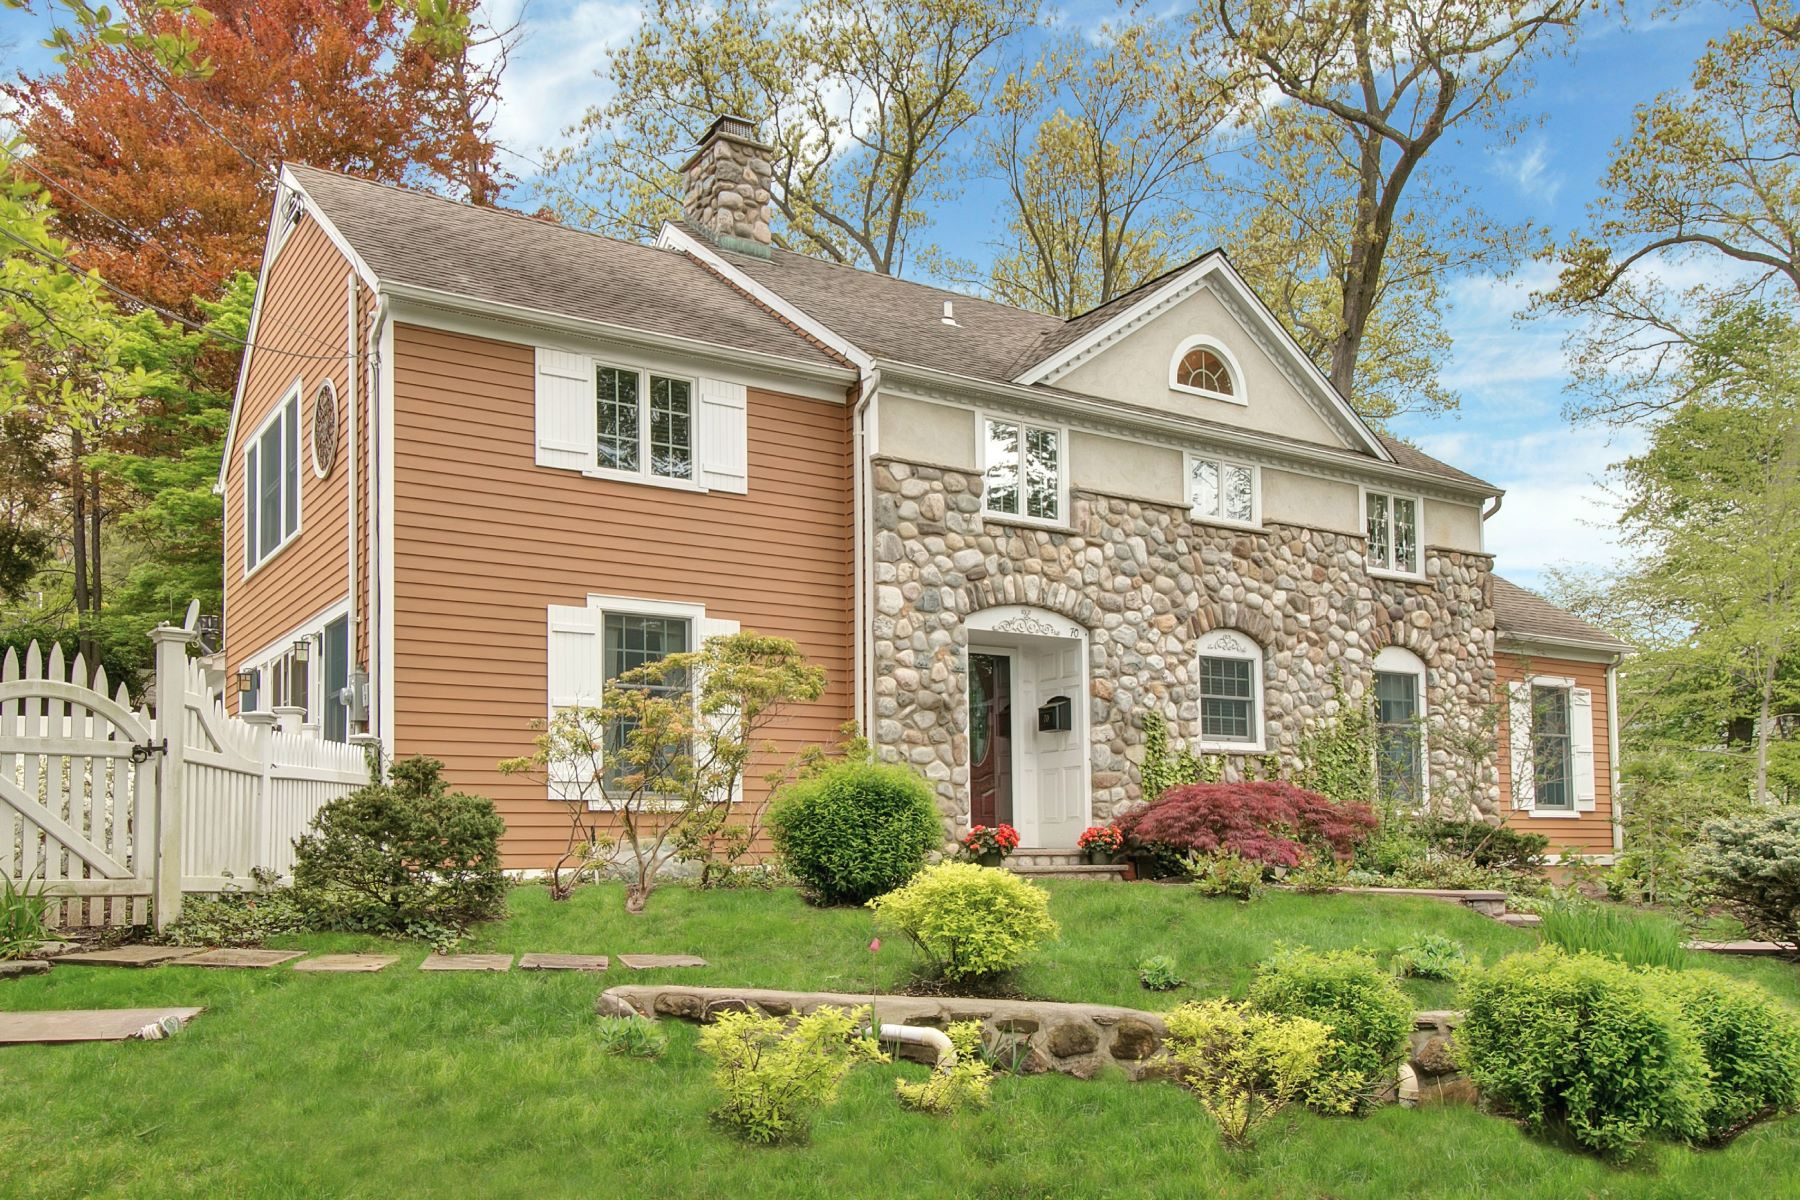 Single Family Home for Sale at Magnificant Westside Colonial. 70 North Hillside Place Ridgewood, 07450 United States